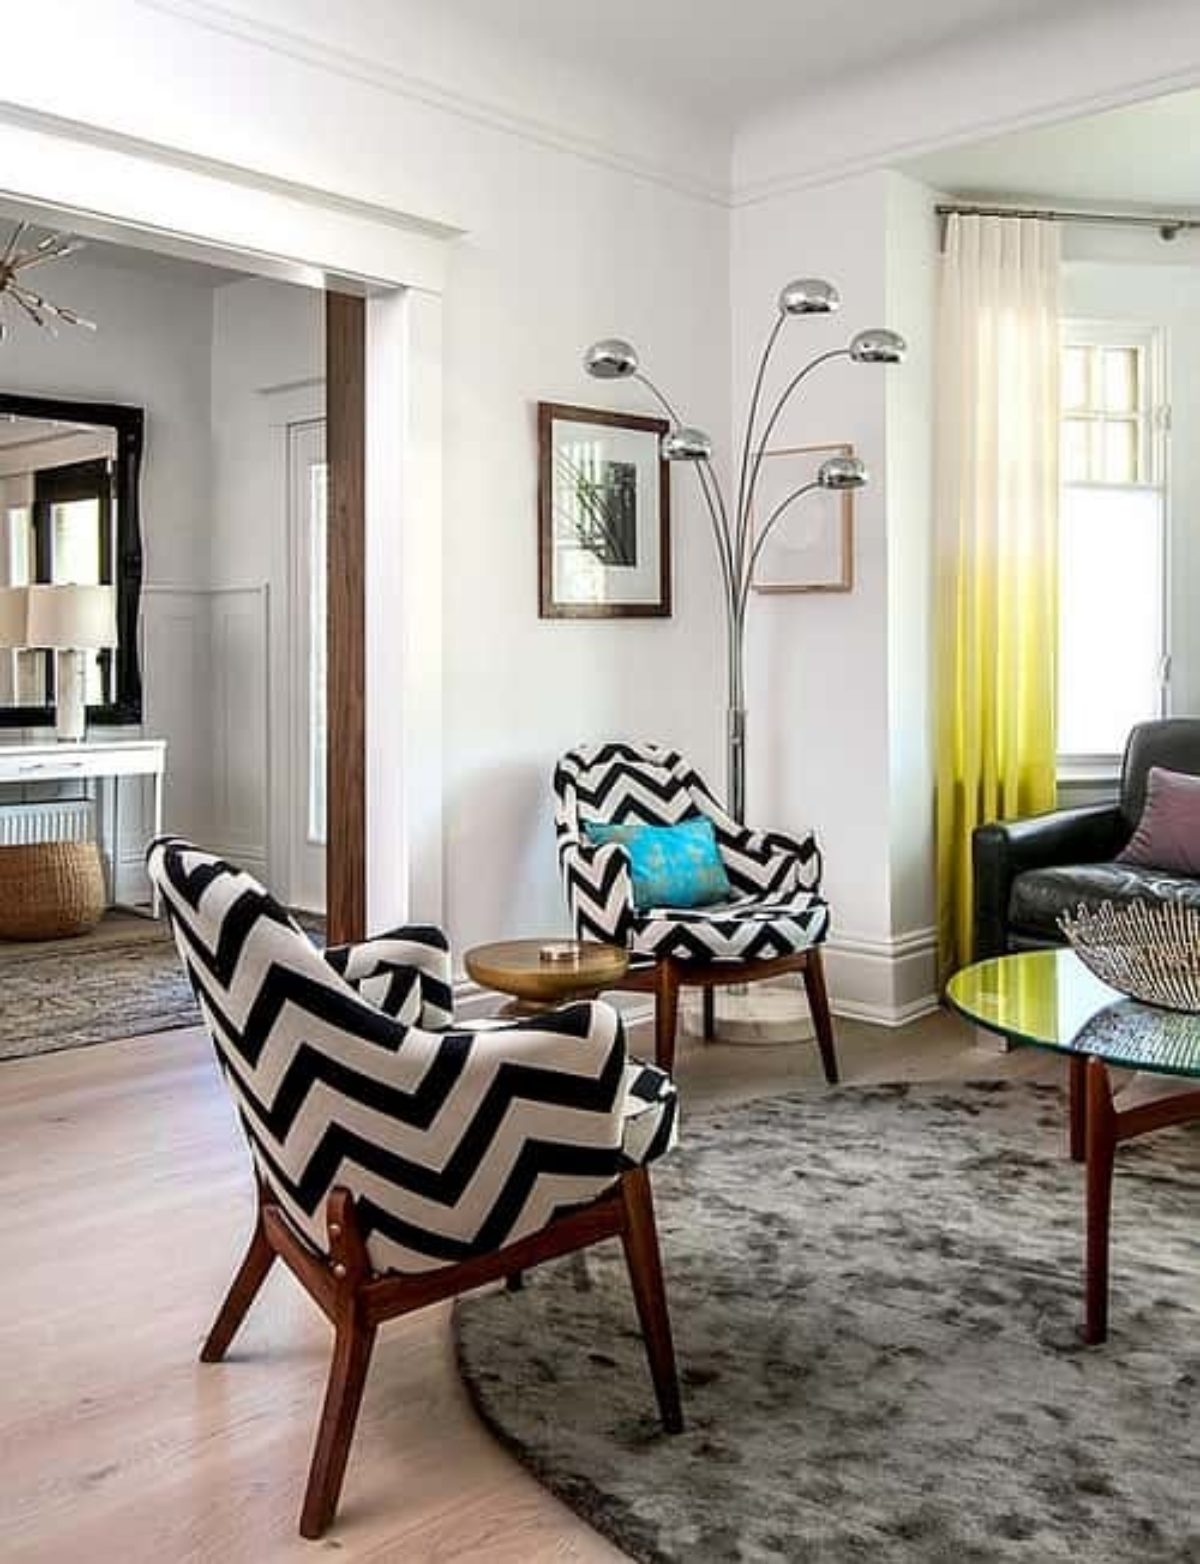 Top 10 Super Fun Patterned Living Room Chairs On Amazon